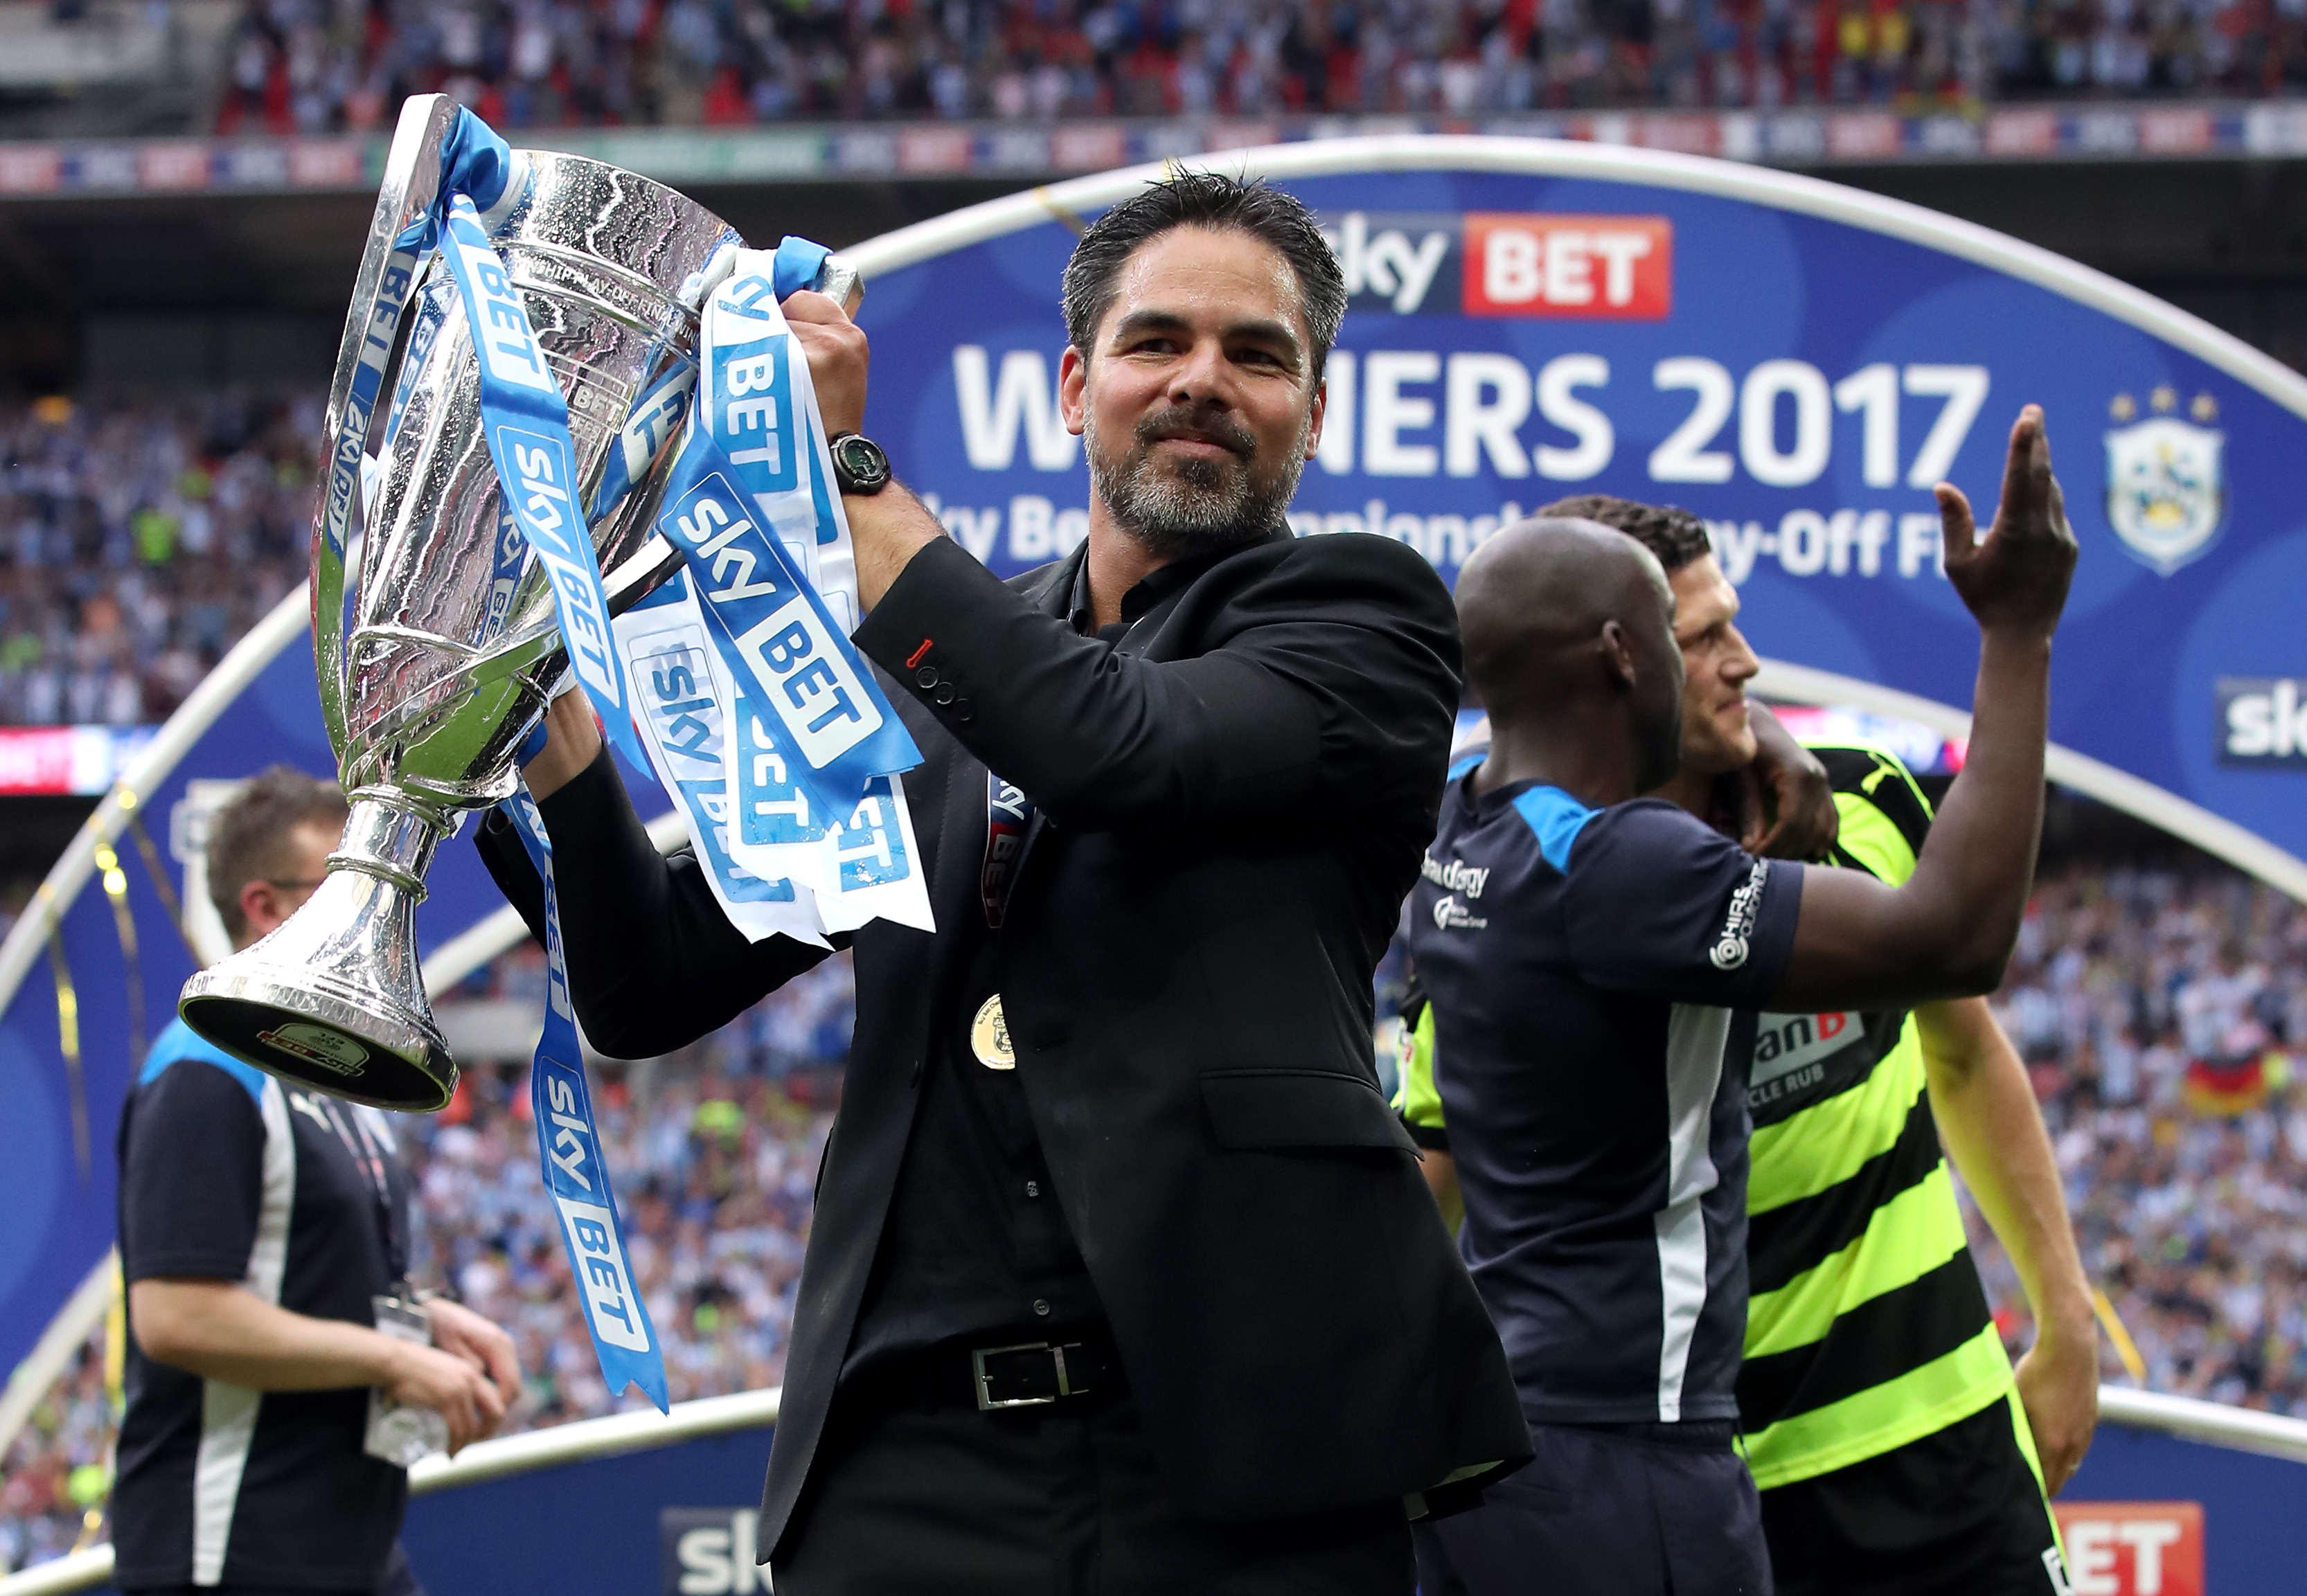 Brighton & Hove Albion start with home game against Manchester City